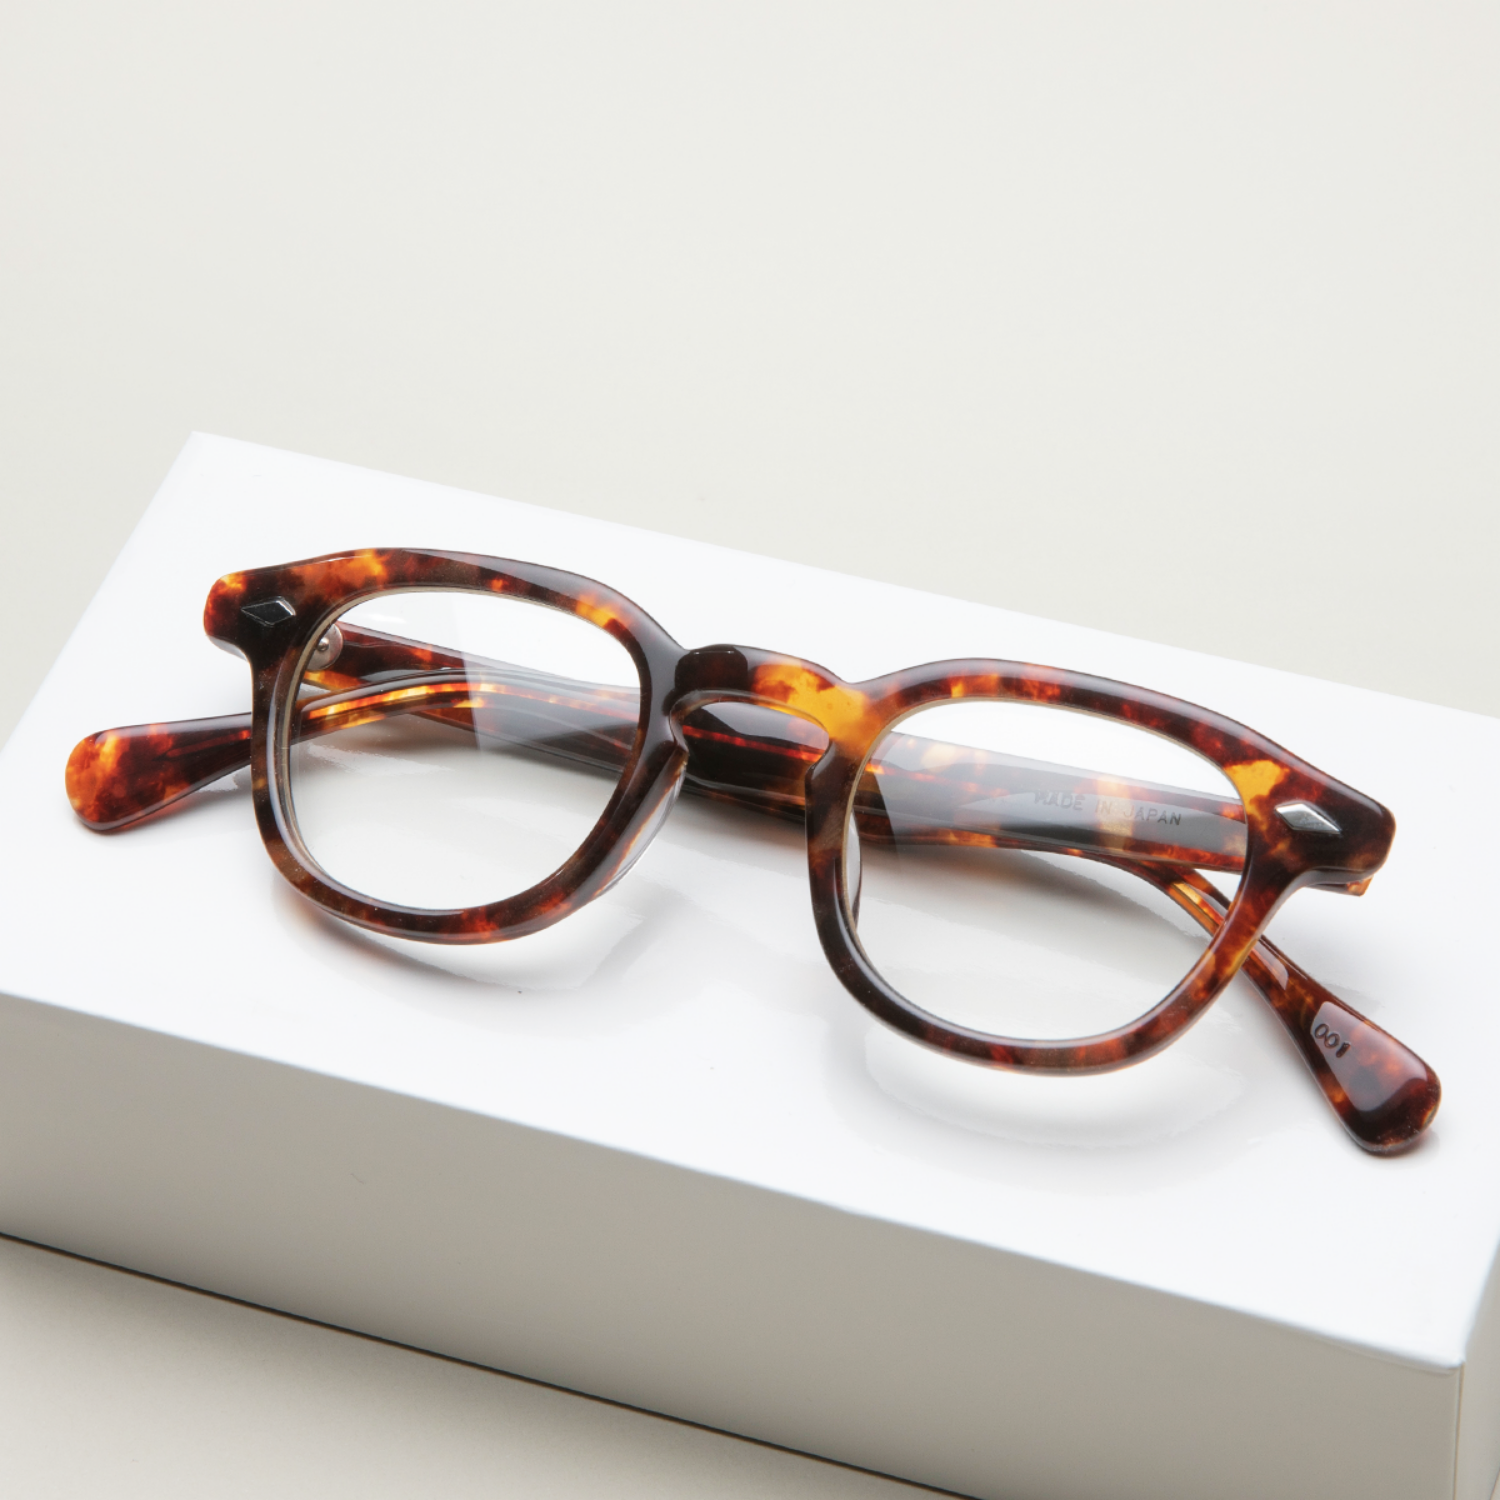 하만옵티컬 안경 월리스 WALLIS DEEP AMBER HARMAN OPTICAL